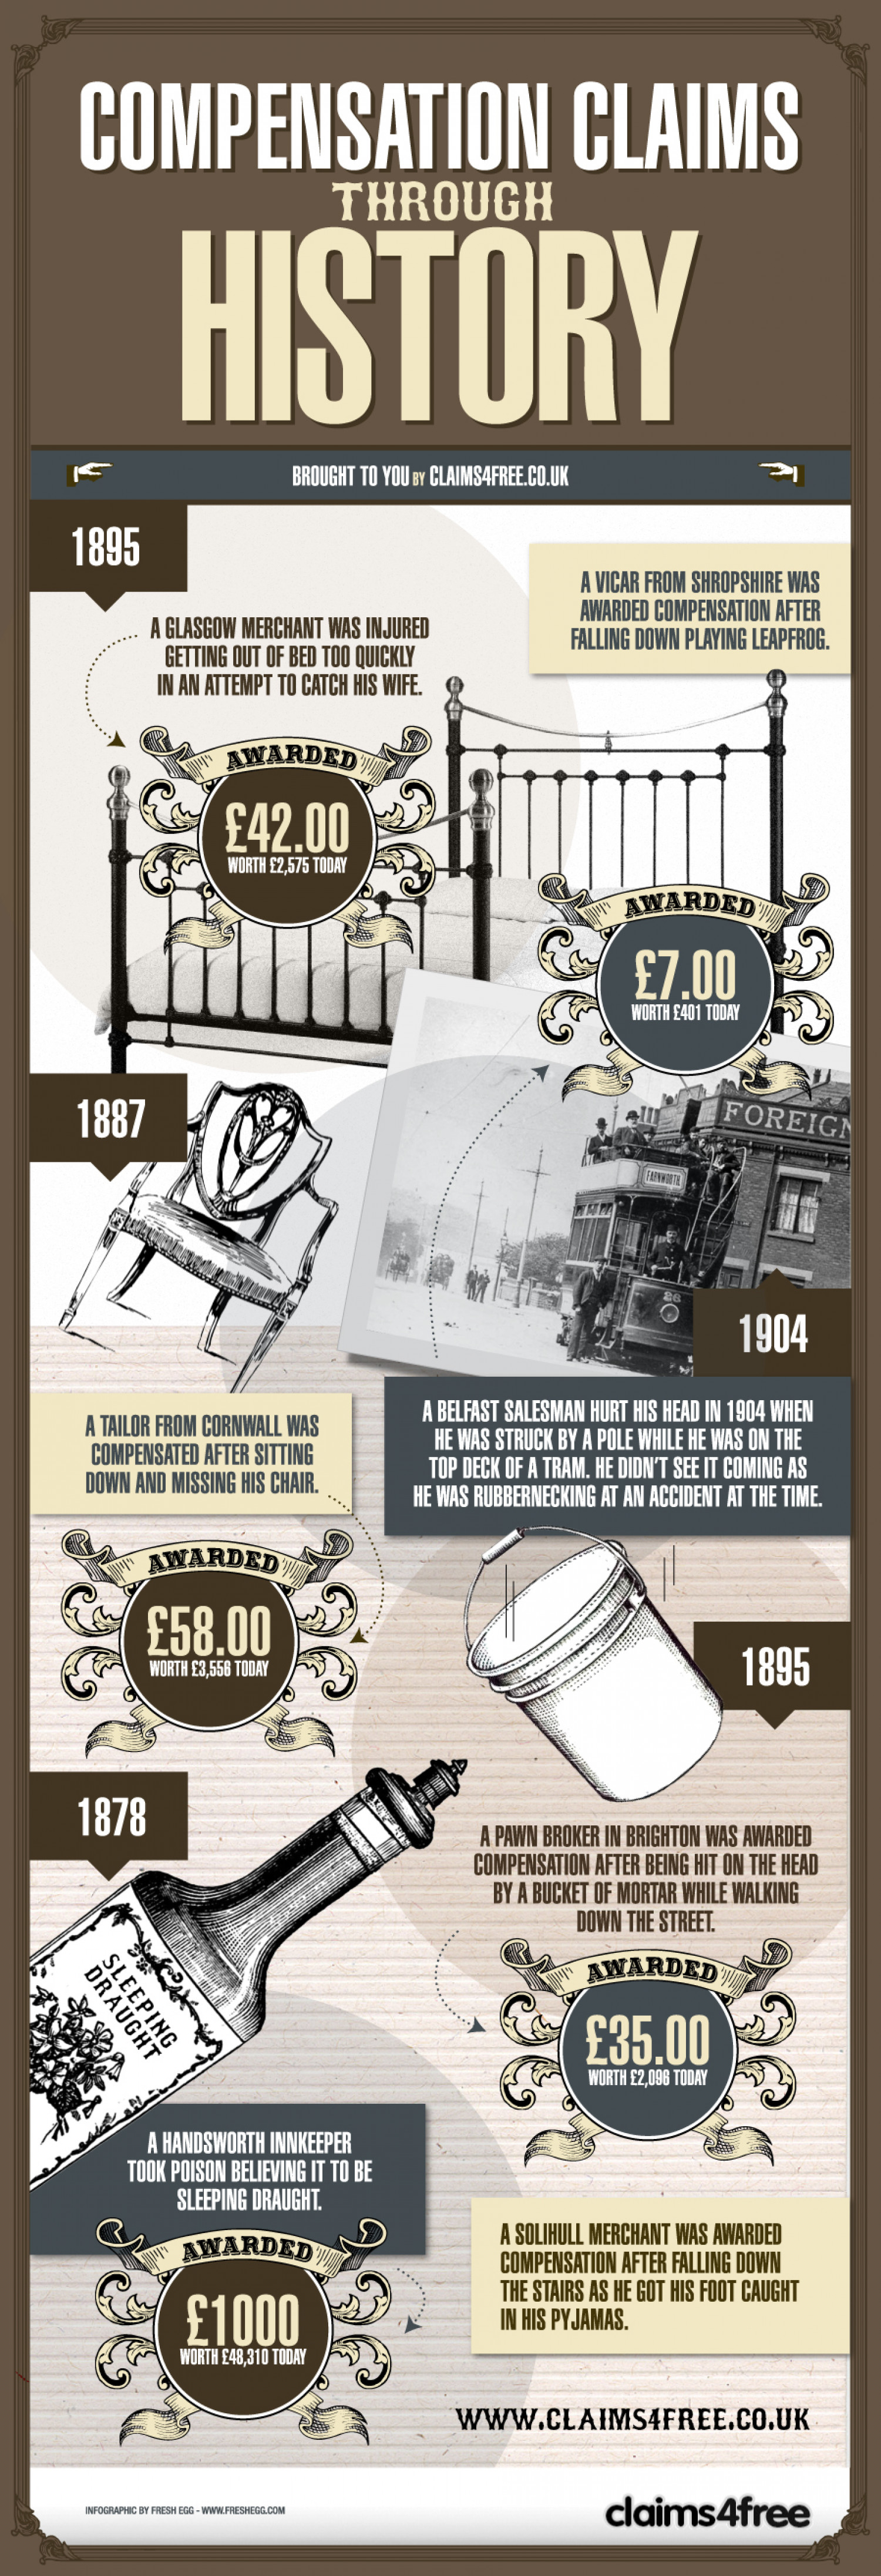 Compensation claims through history Infographic